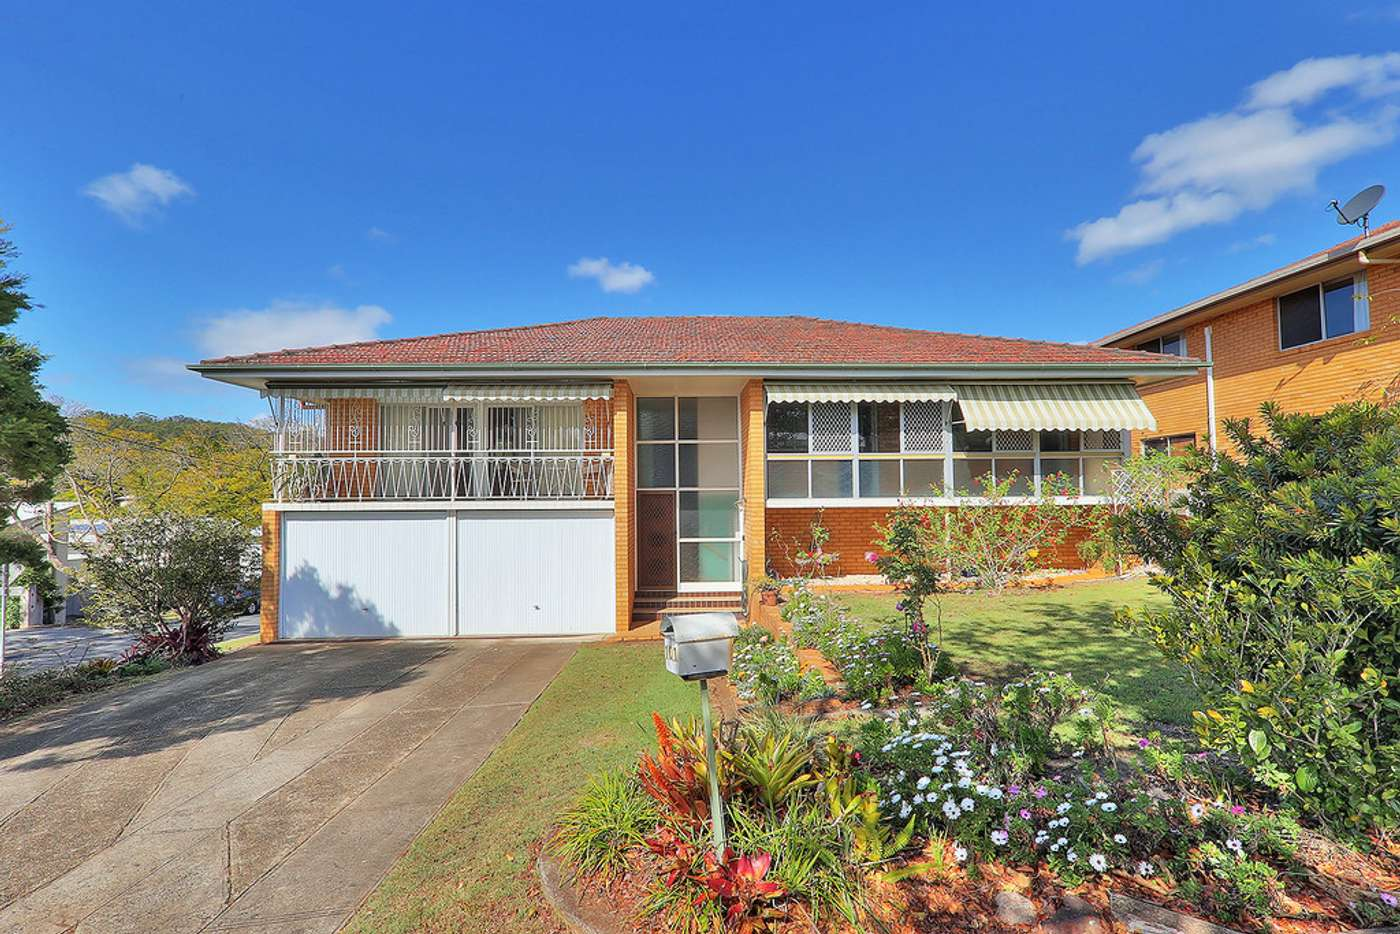 Main view of Homely house listing, 101 Windmill St, Tarragindi QLD 4121